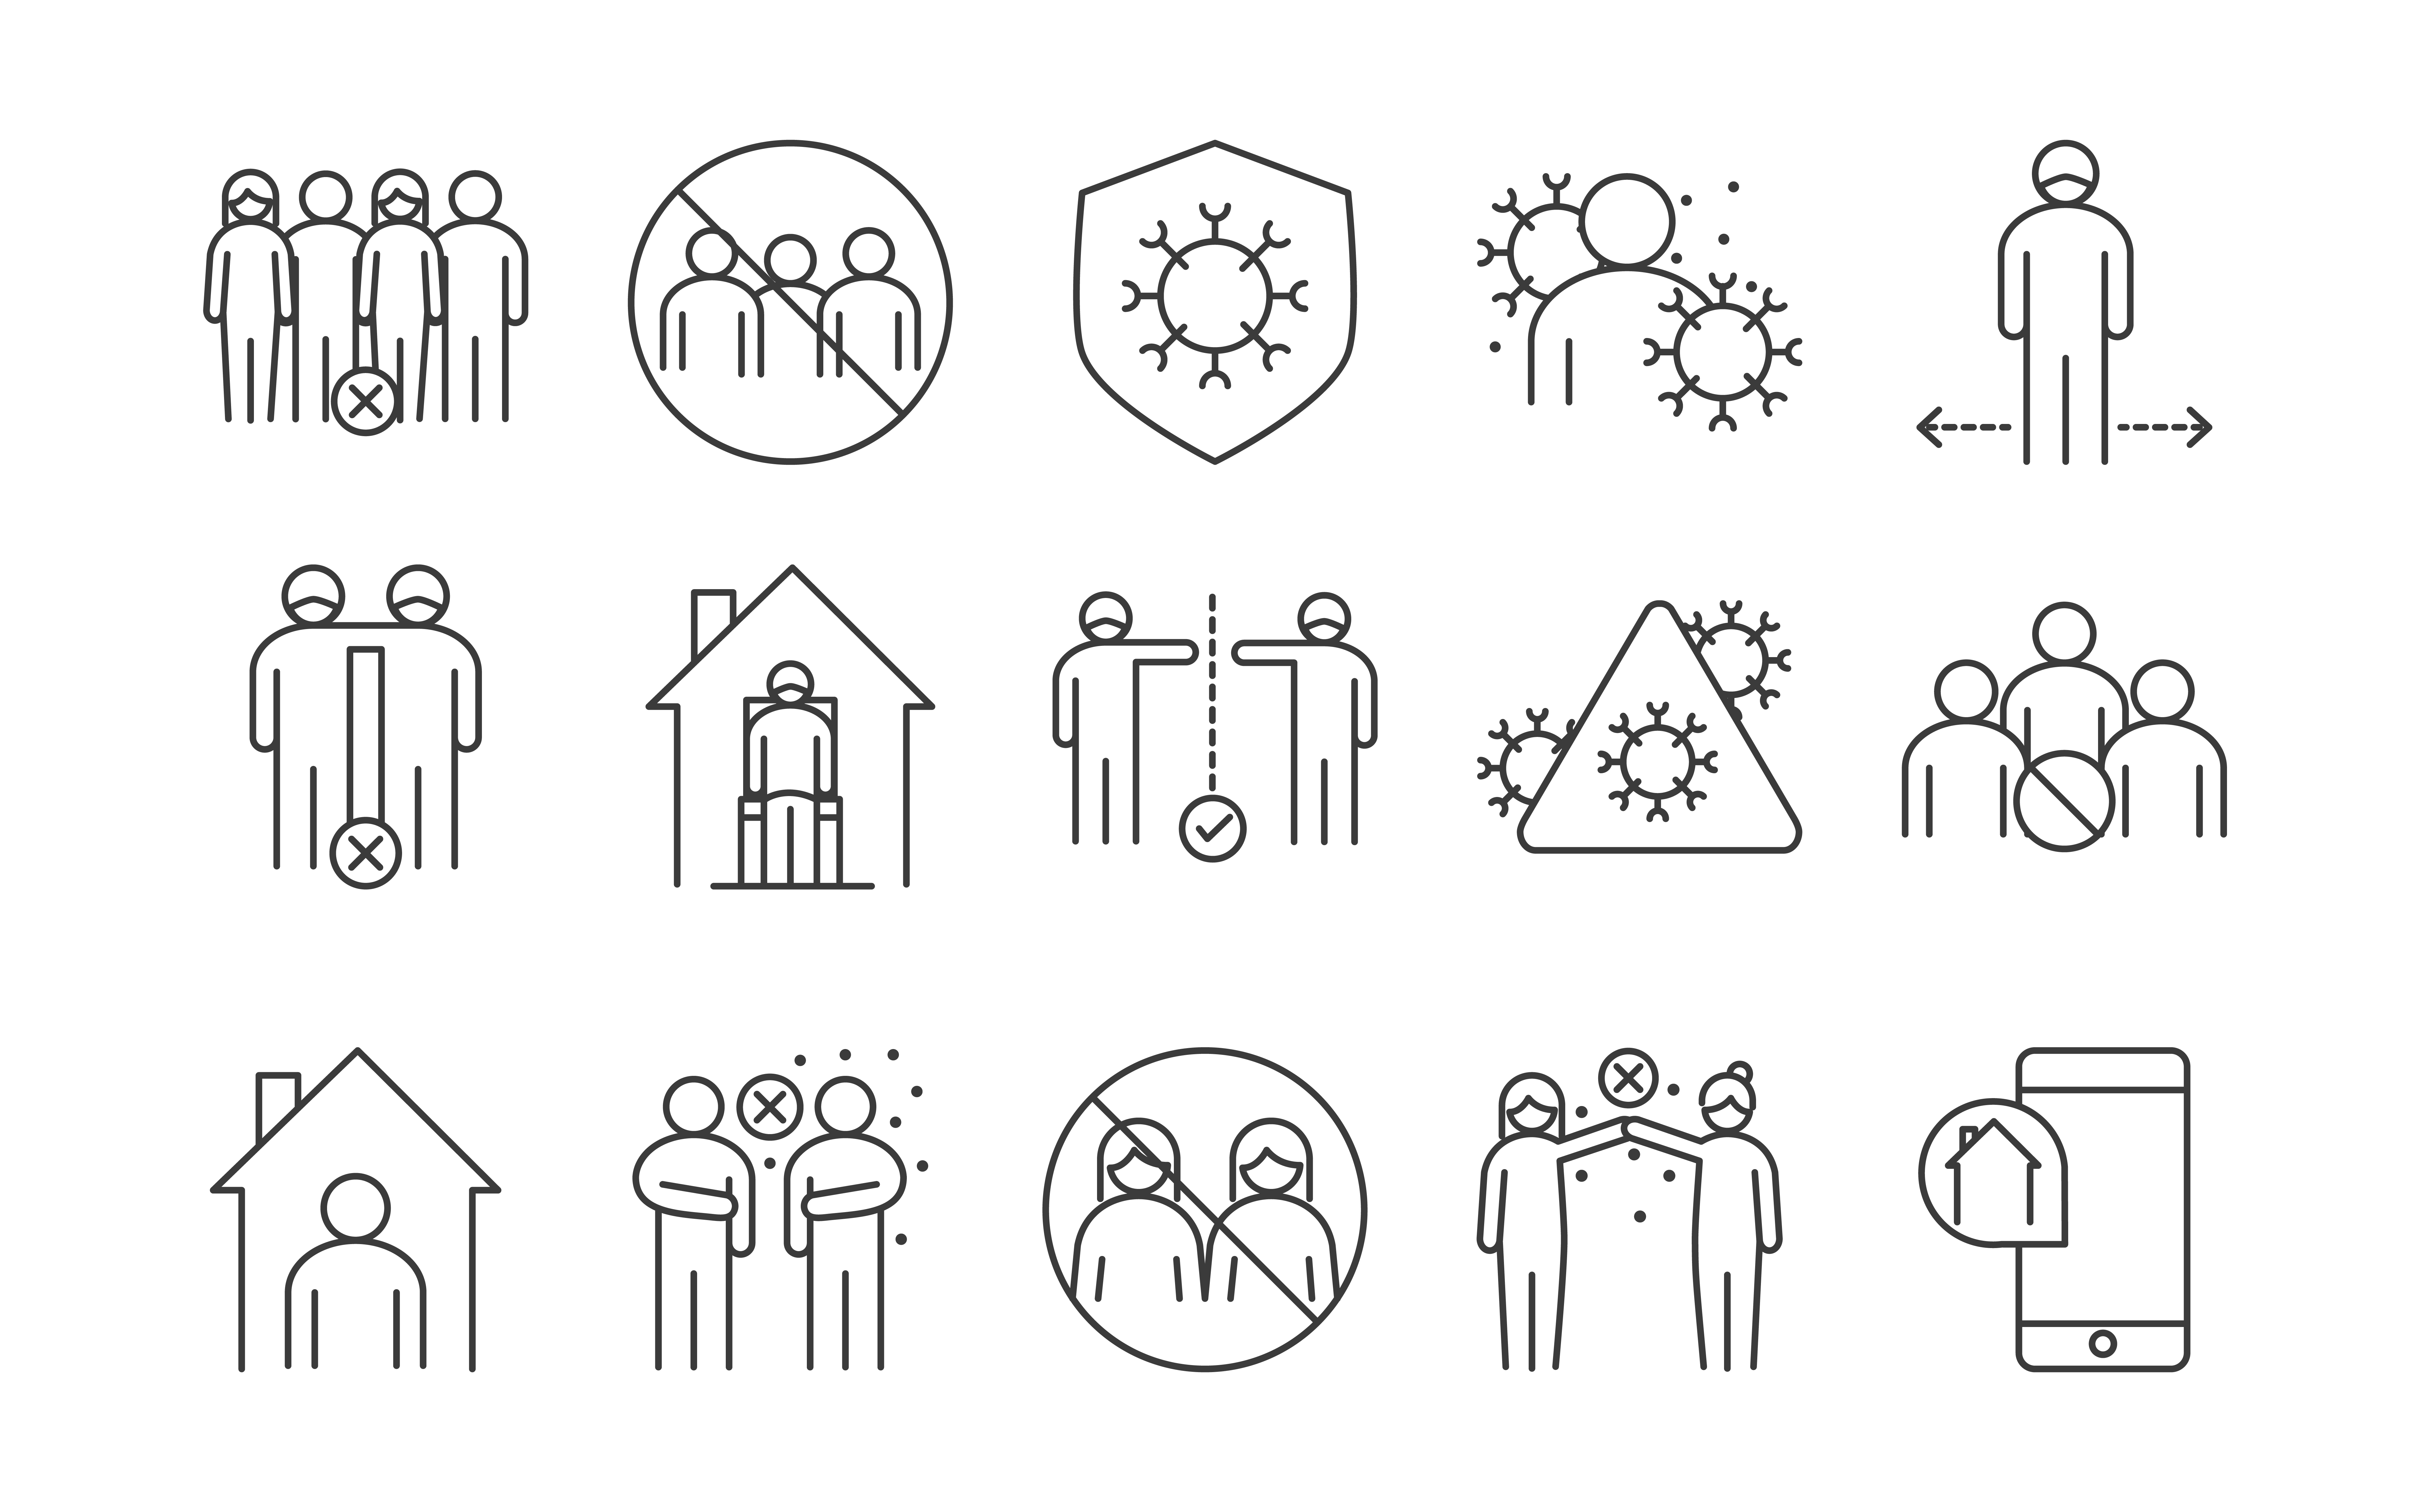 Viral infection single-line icon set